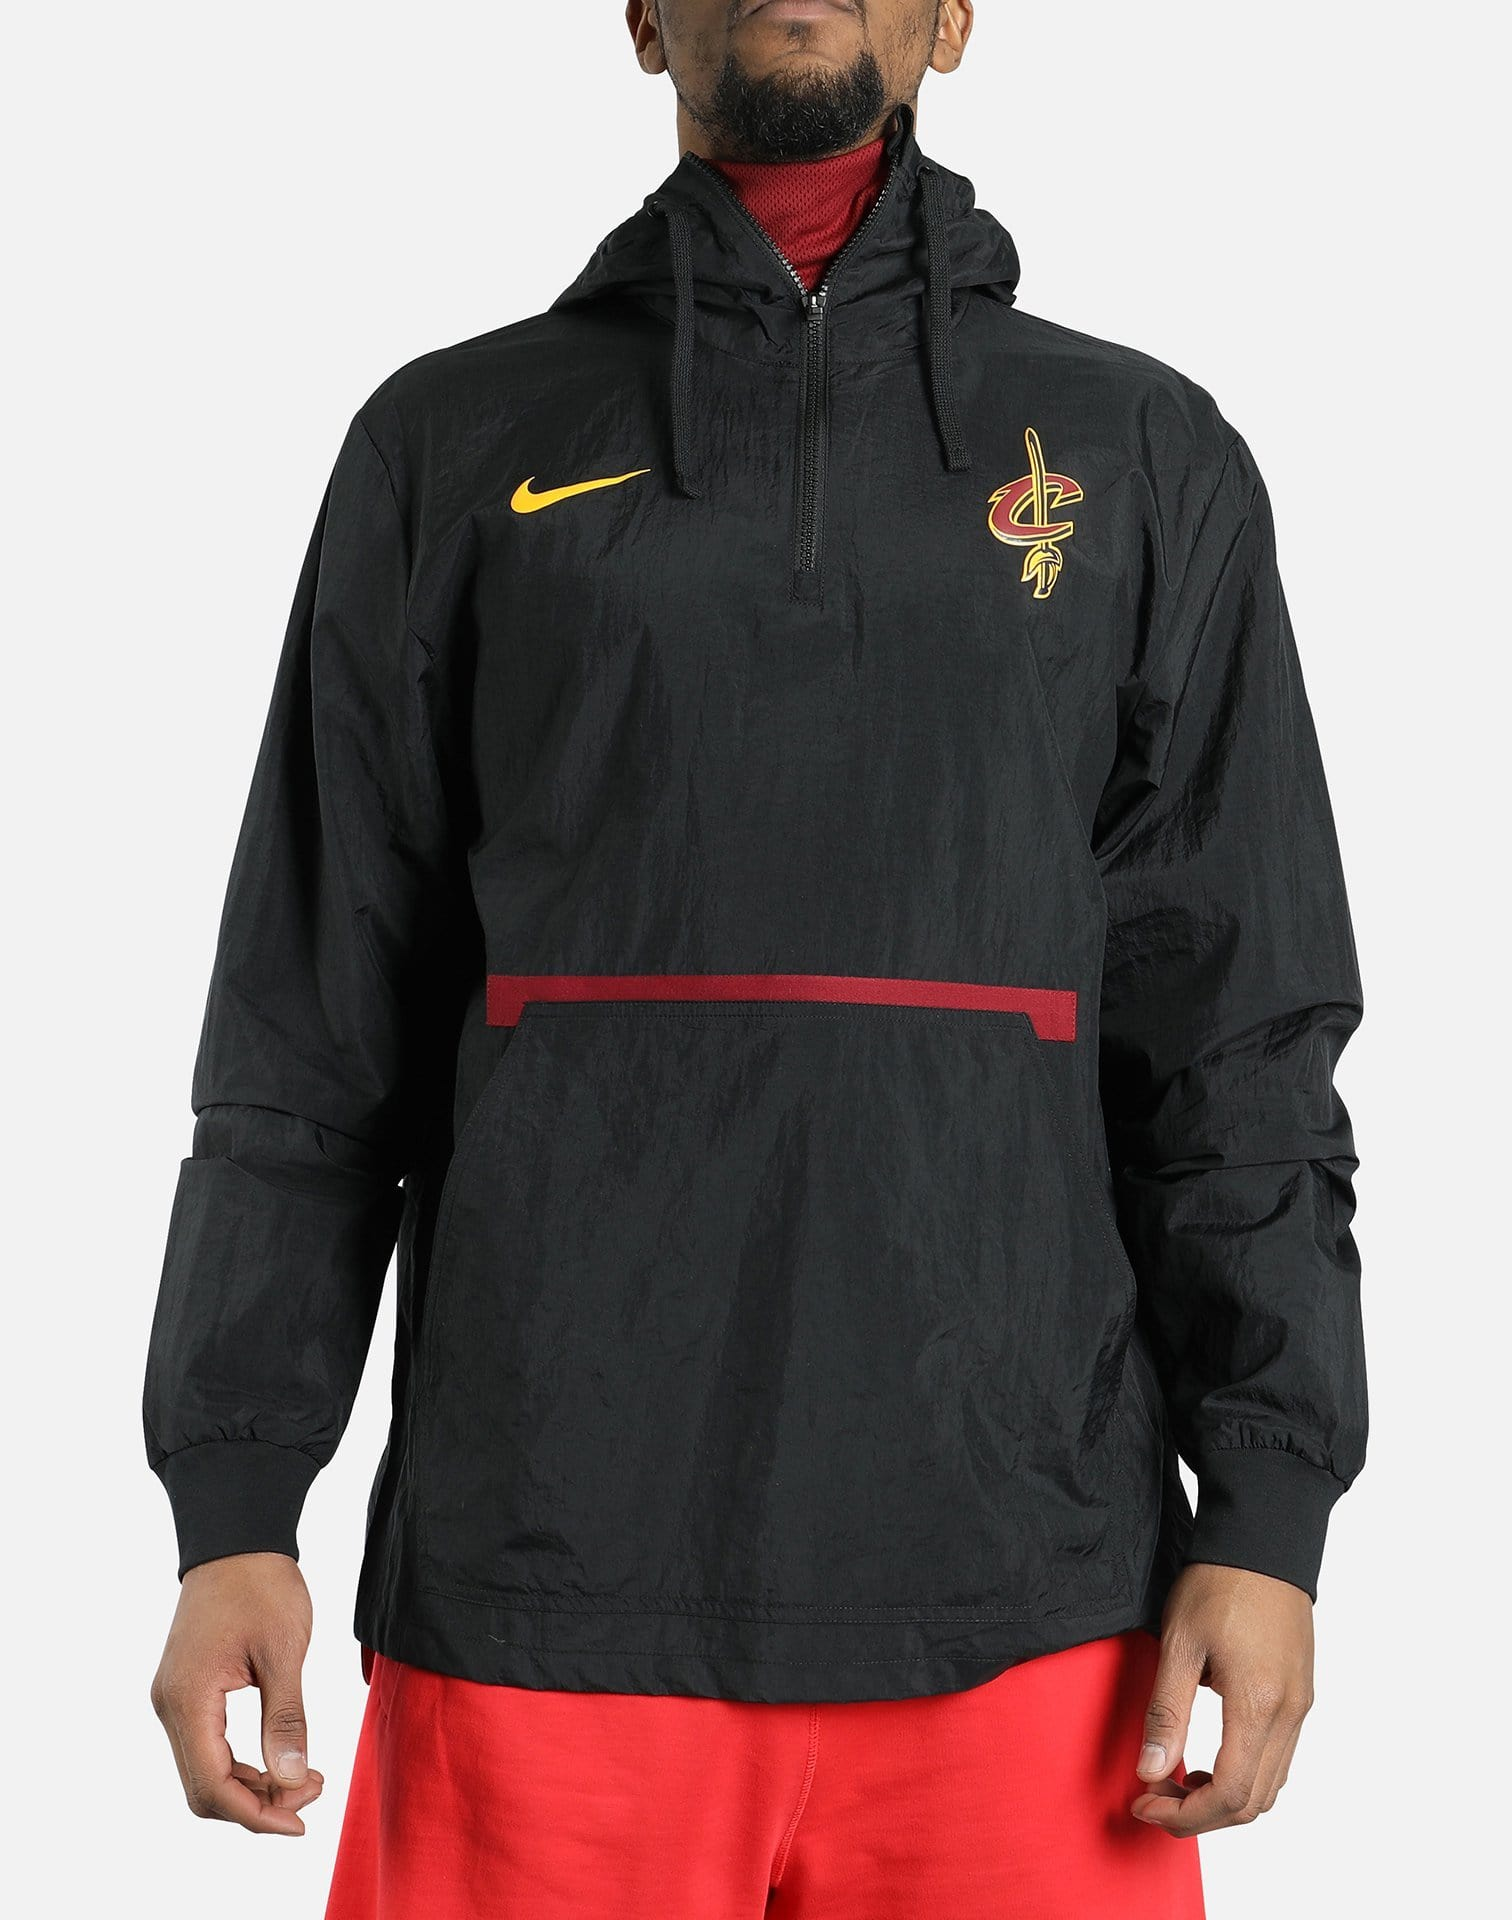 Nike NBA Cleveland Cavaliers Woven Packable Jacket